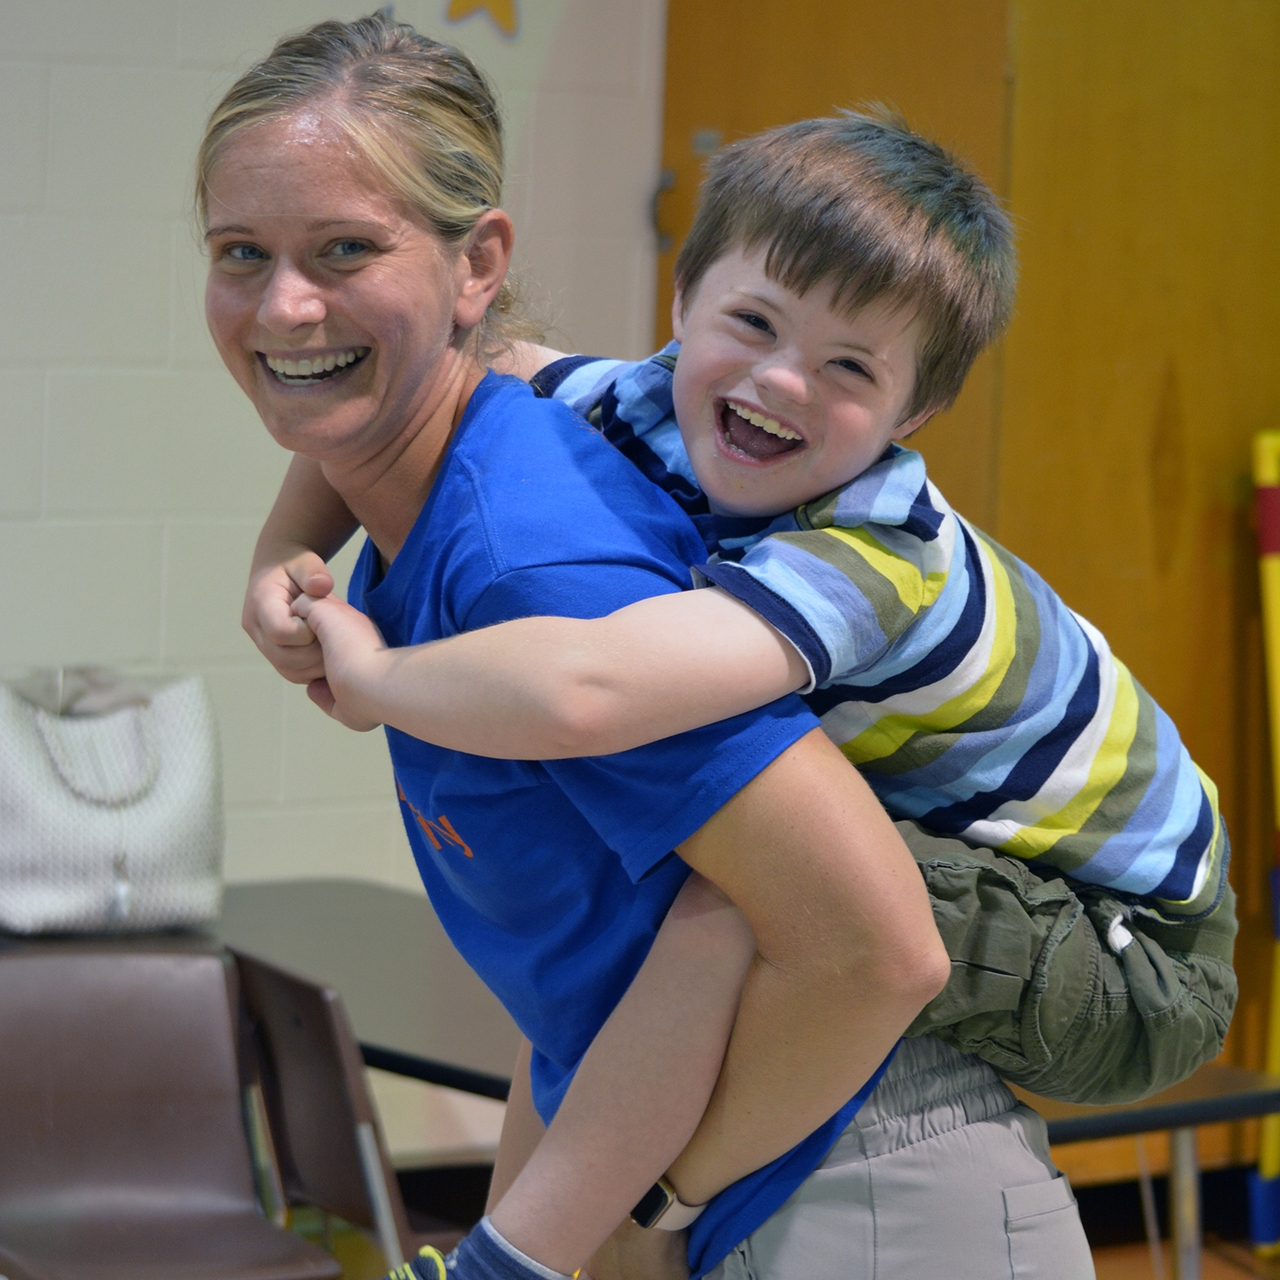 ESC staff member playing with a child